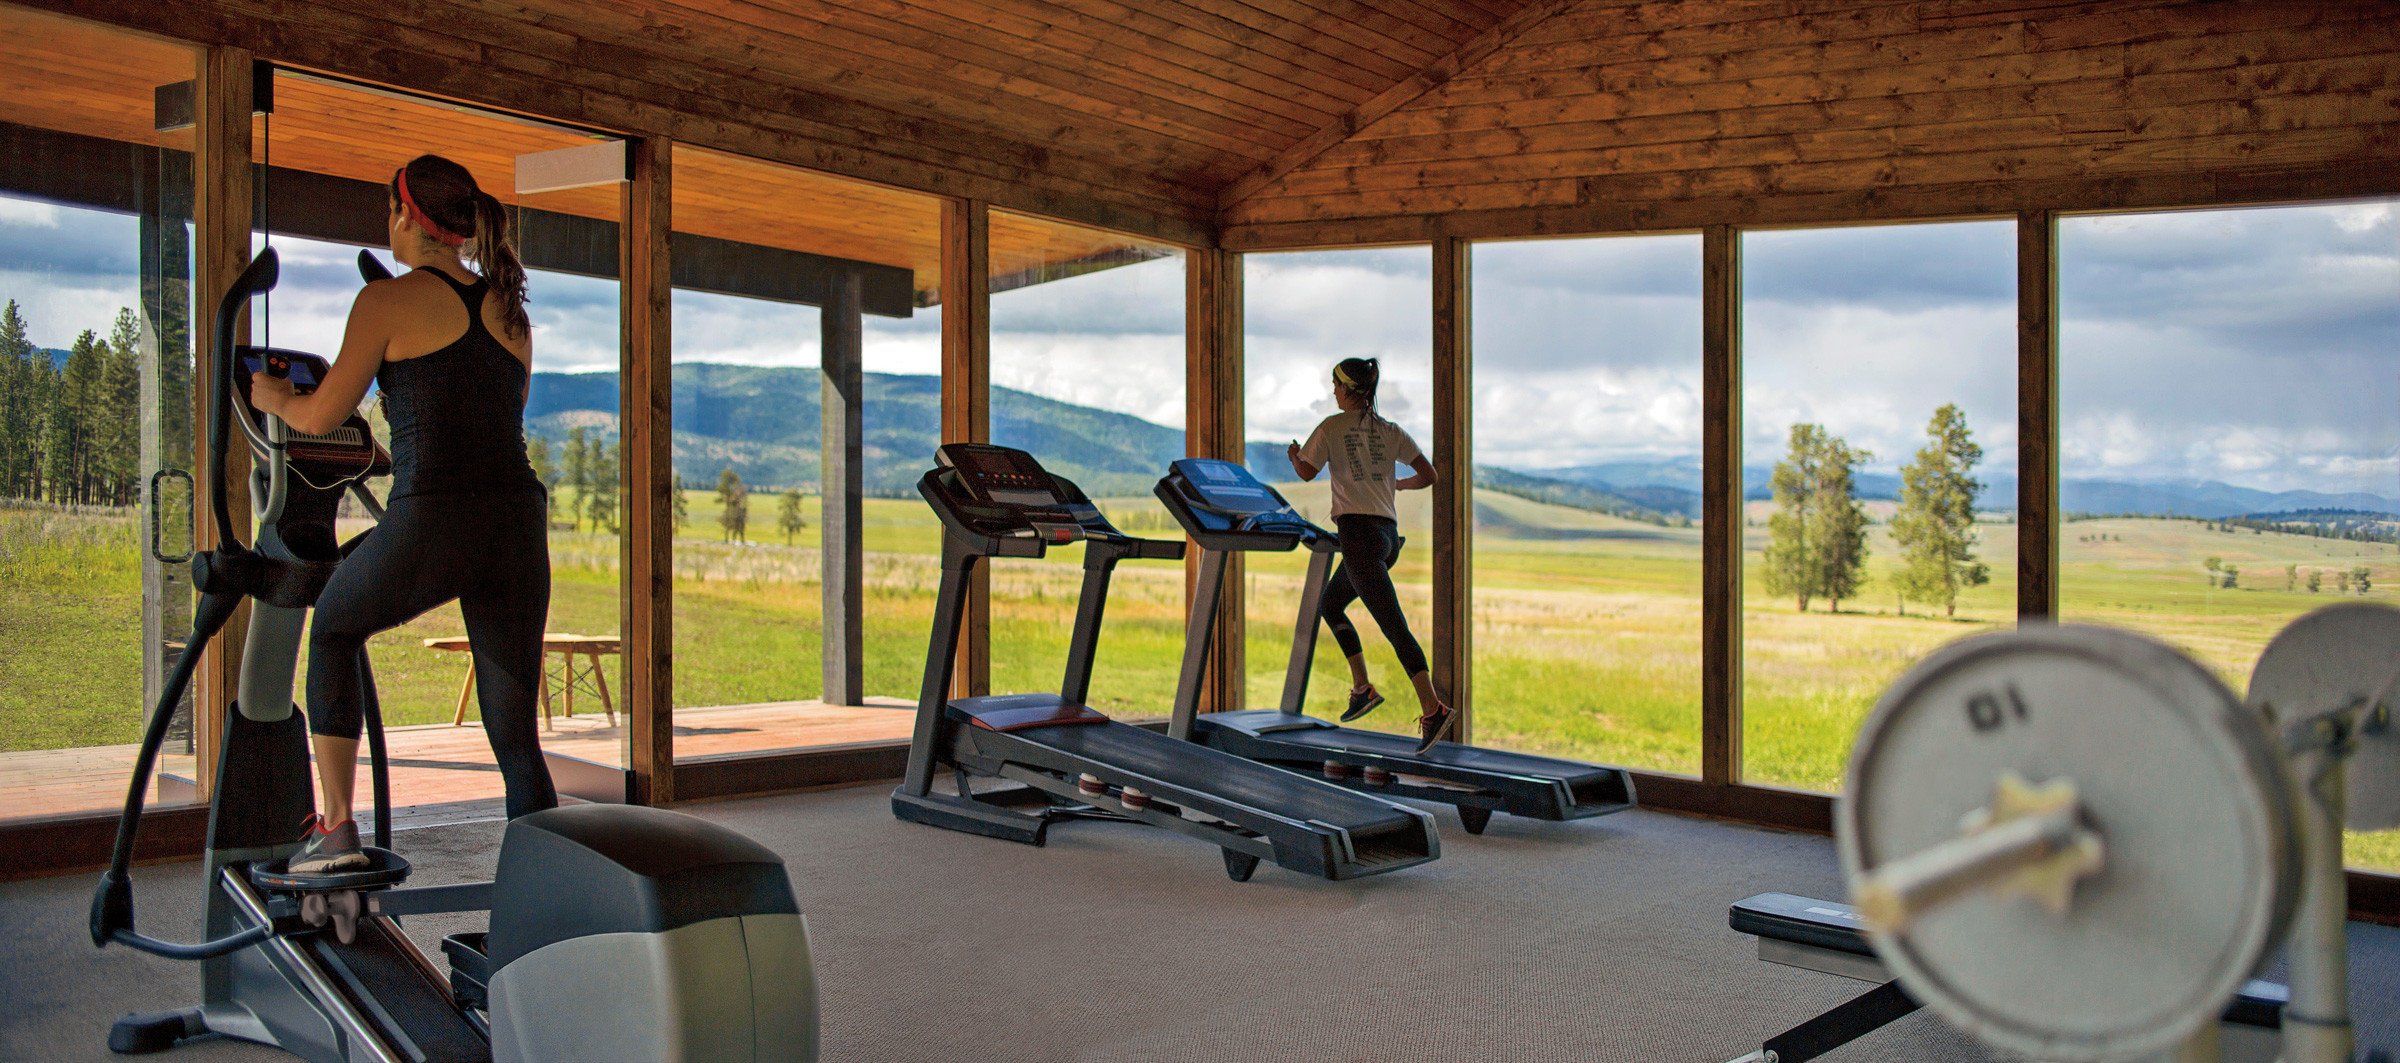 leisure structure sport venue physical fitness Resort